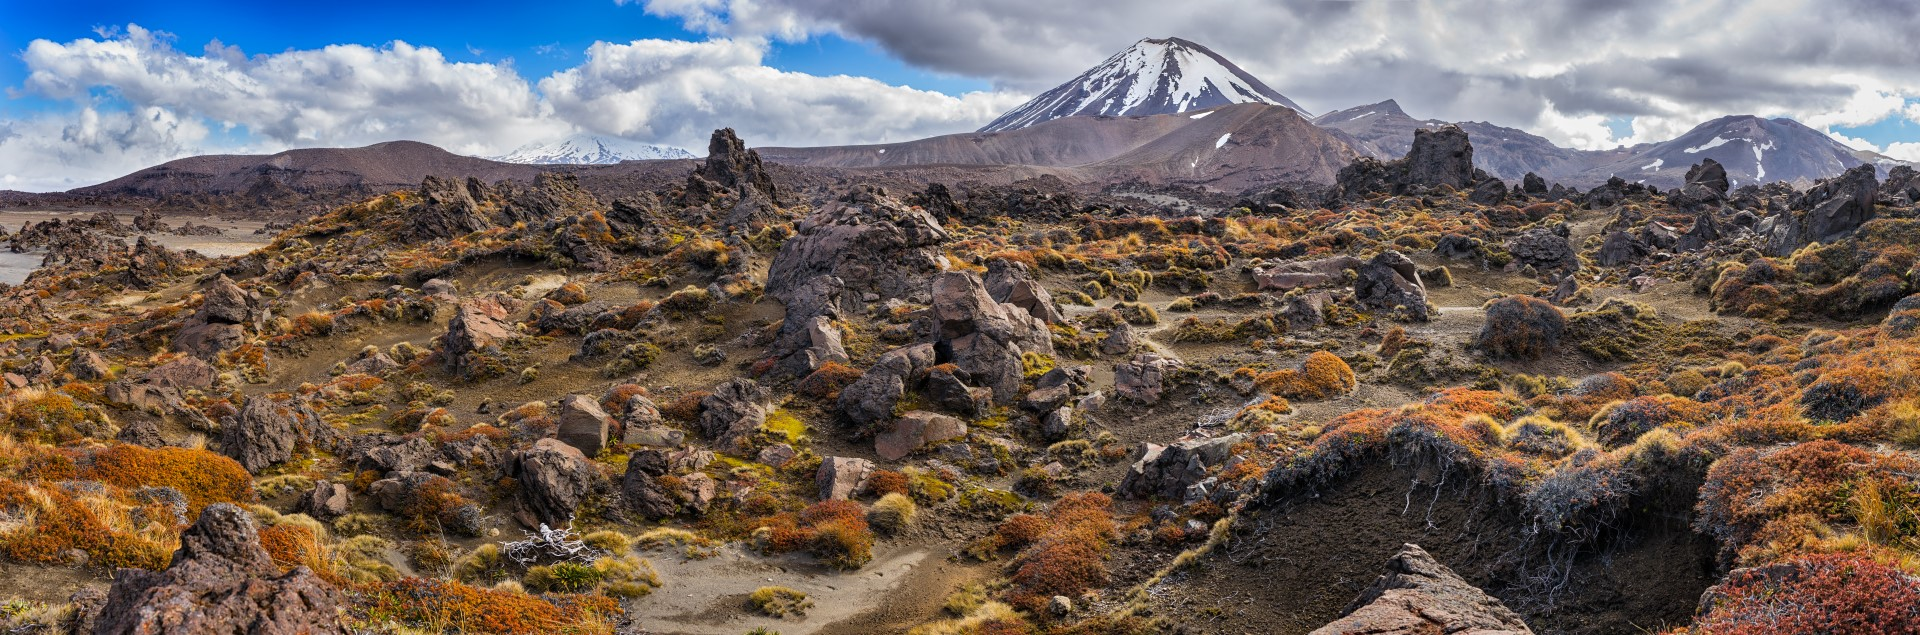 Panoramic view of Tongariro national park and Mt Ngauruhoe